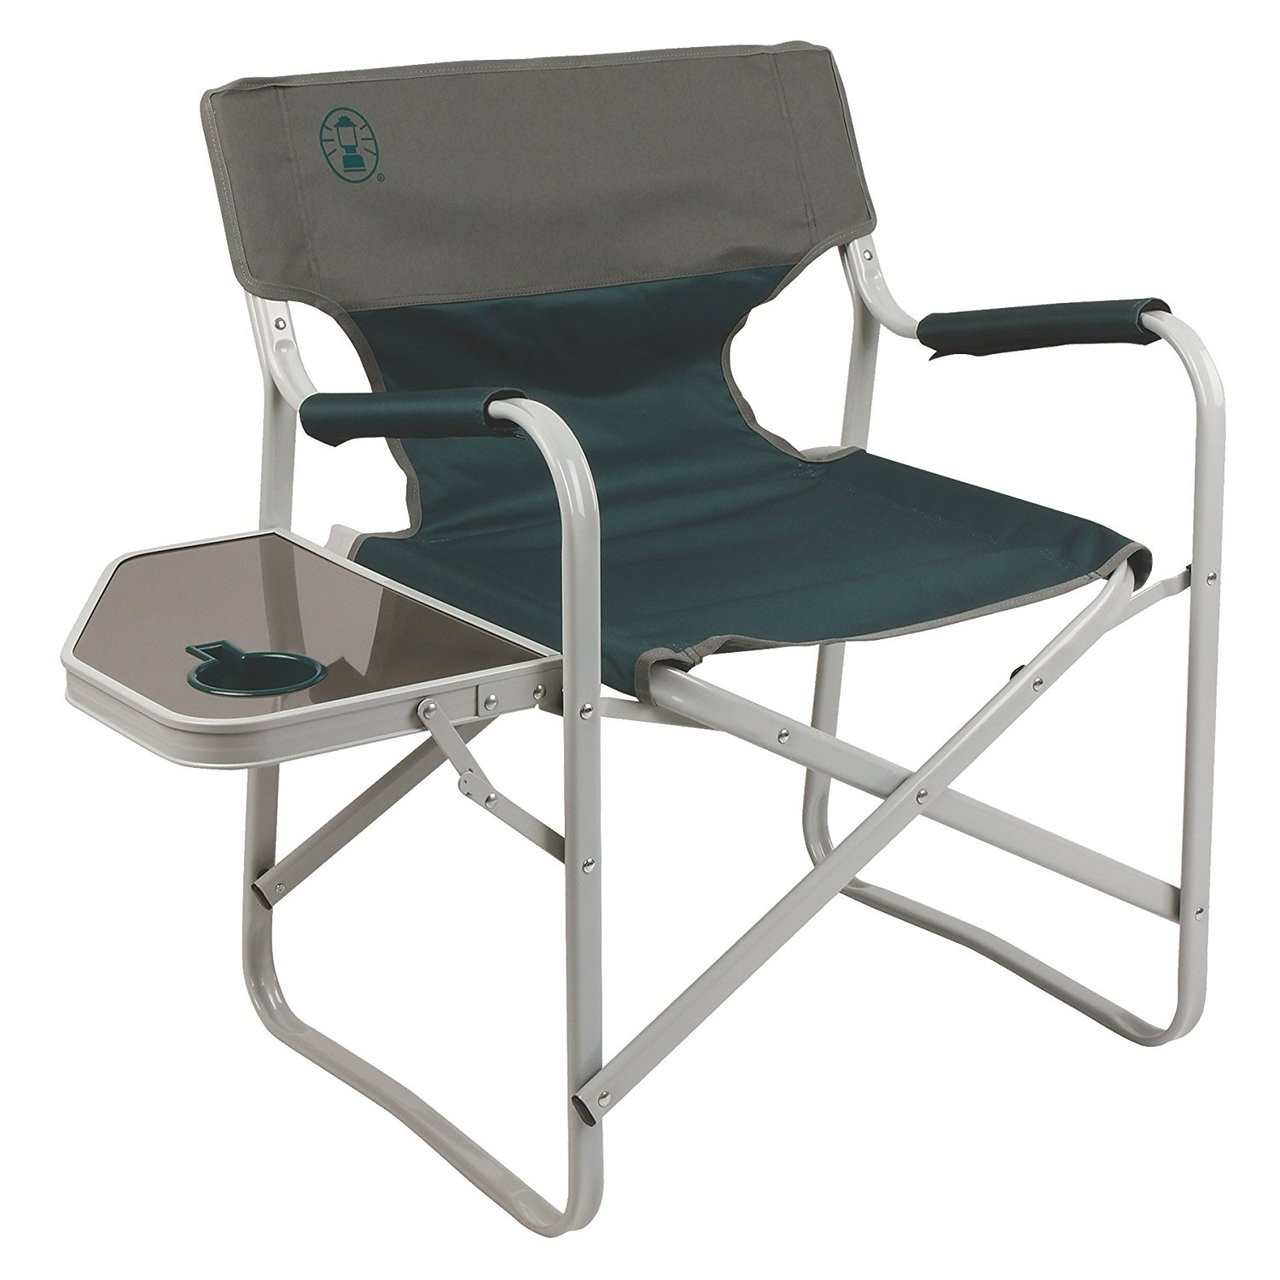 Coleman Comfortsmart Chair Coleman Outpost Elite Deck Chair Green Upc 076501156164